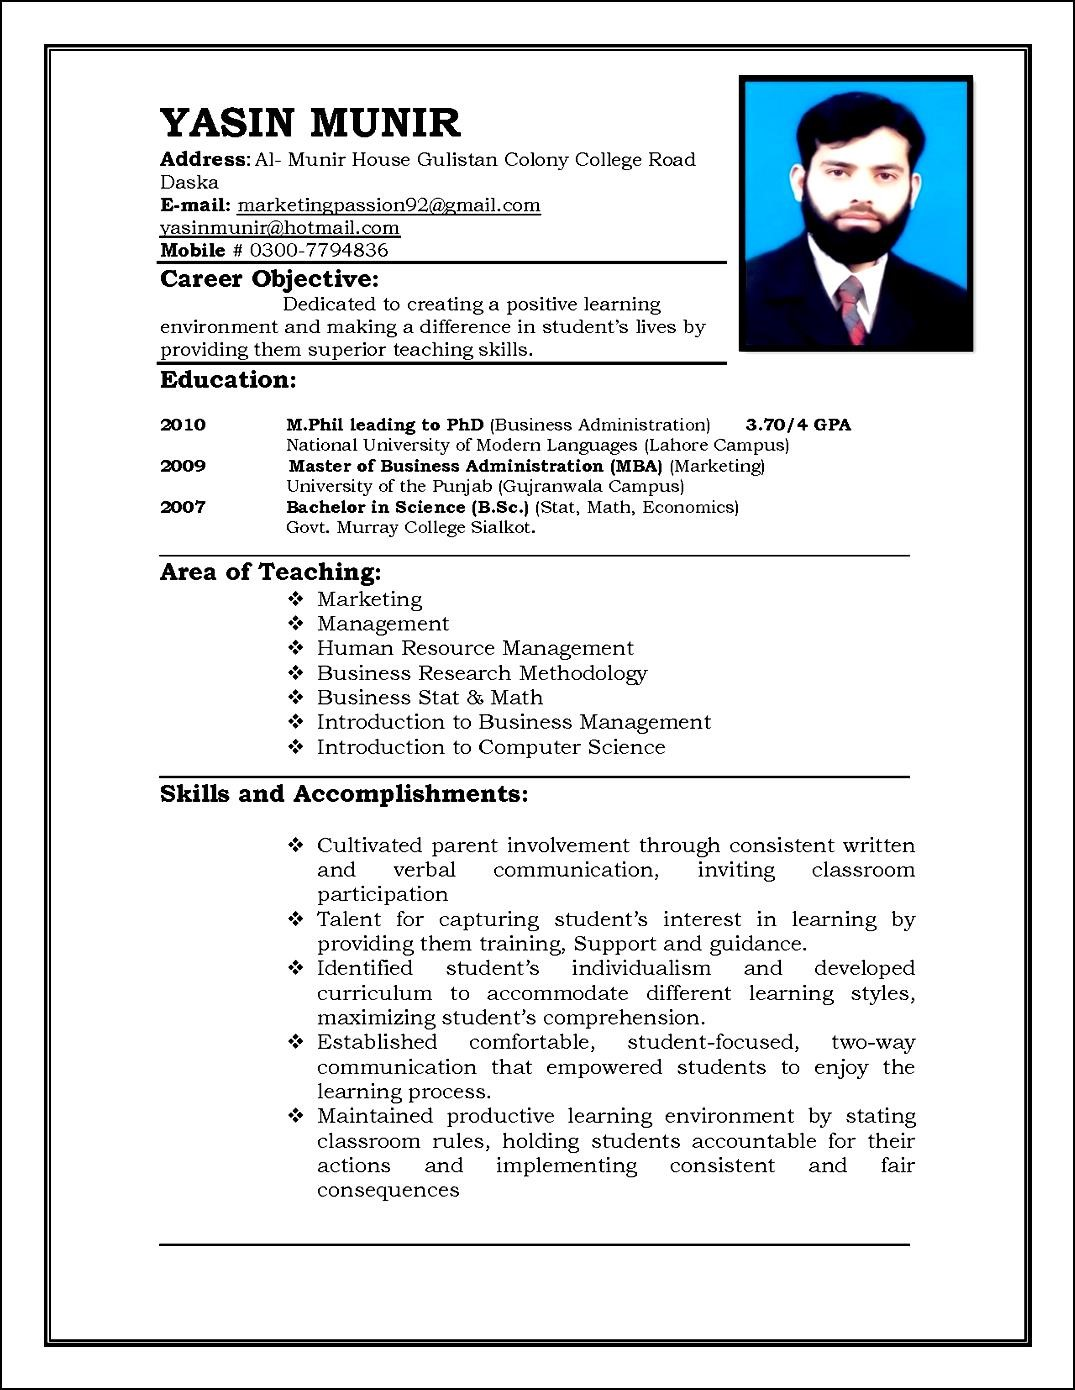 cv personal statement teamwork sample resume service cv personal statement teamwork how to write a personal statement career advice expert curriculum vitae how